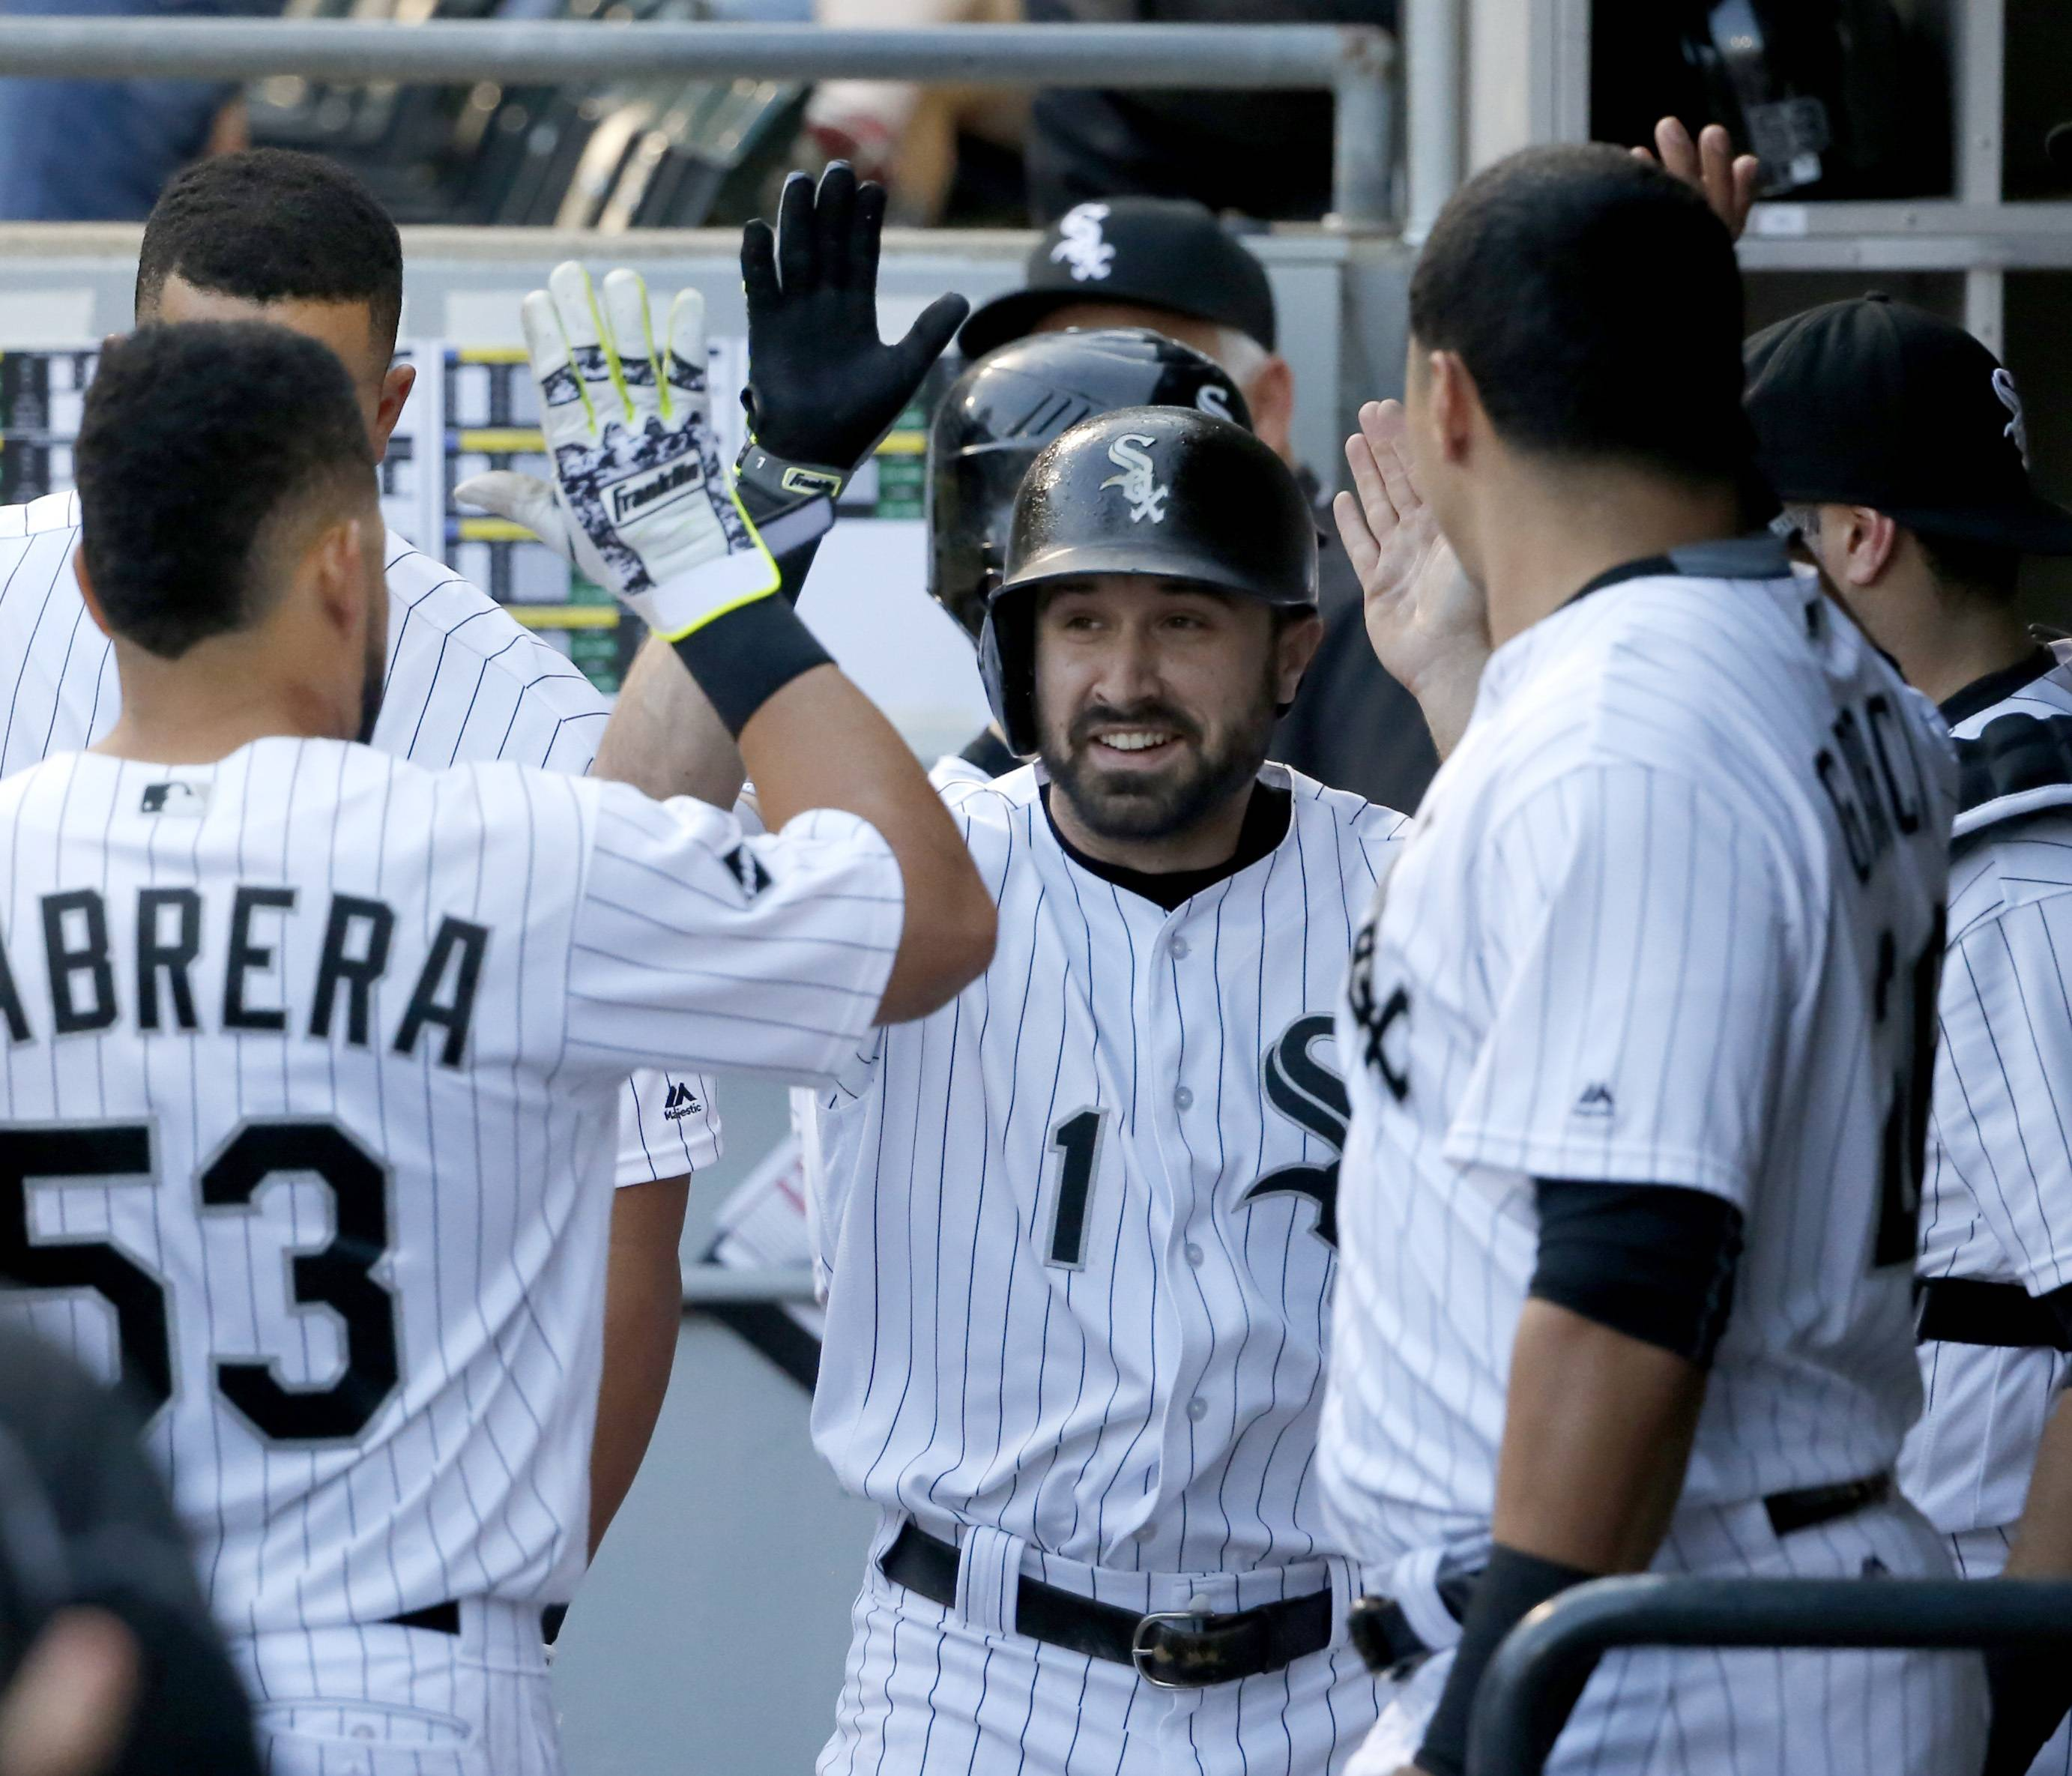 Adam Eaton's single in the ninth inning Sunday helped the White Sox beat Detroit 4-3 at U.S. Cellular Field.